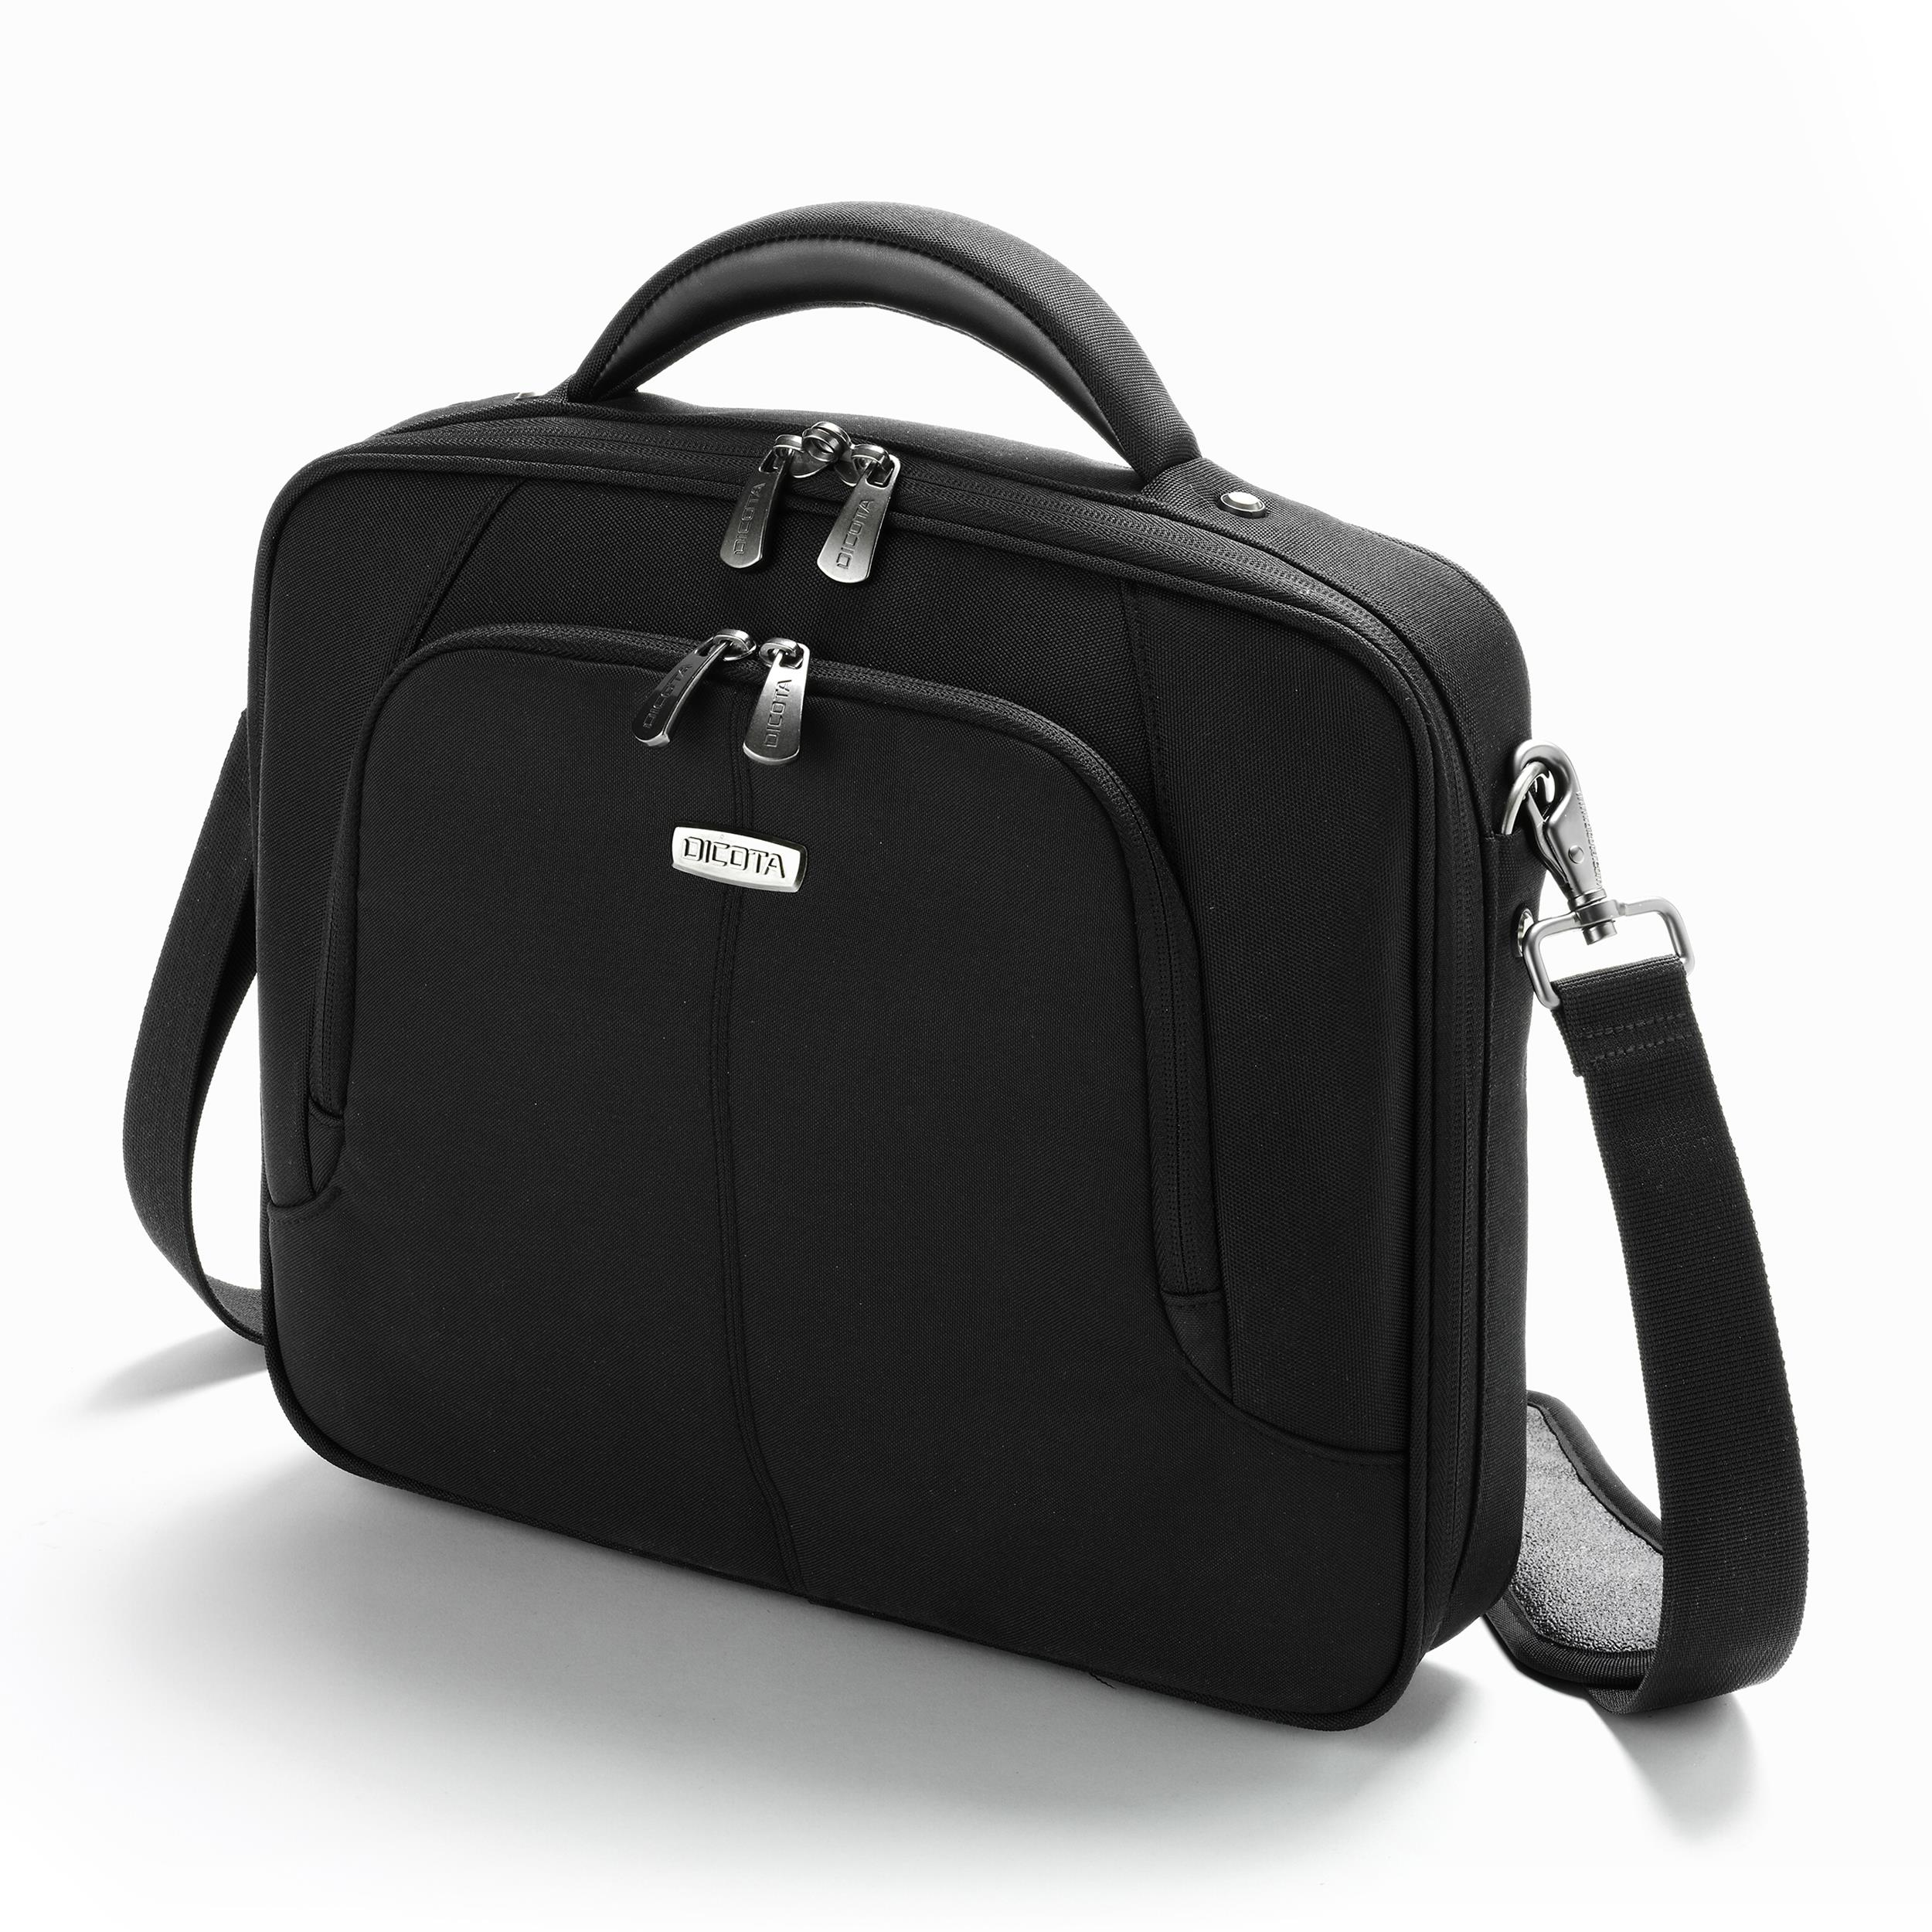 NOTEBOOK BAG DICOTA MULTI START ORIGINAL  15.0 UP TO 15.6 - BLACK قماش CLOTH ,Laptop Bag